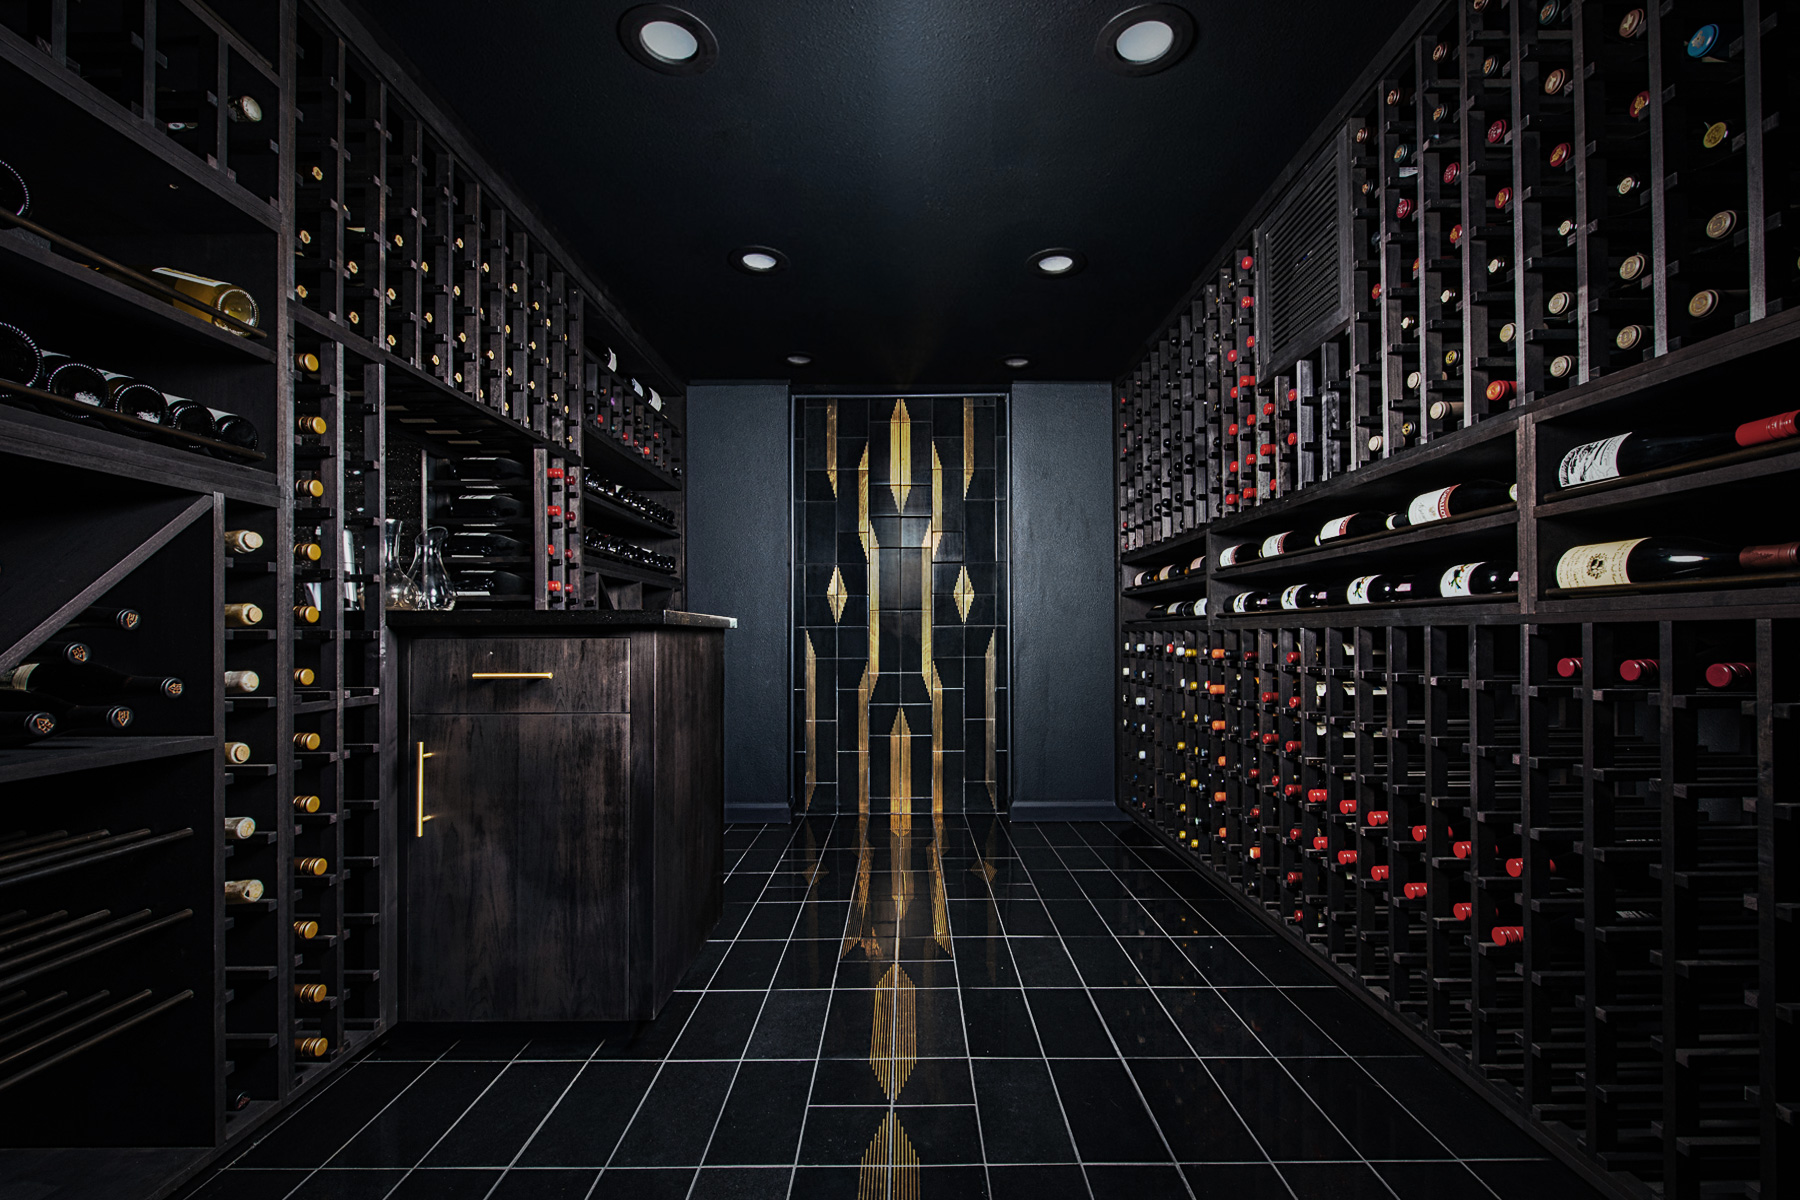 Just because you love old world wines, doesn't mean you have to embrace old world style. Use these modern wine cellar design ideas to get inspired.